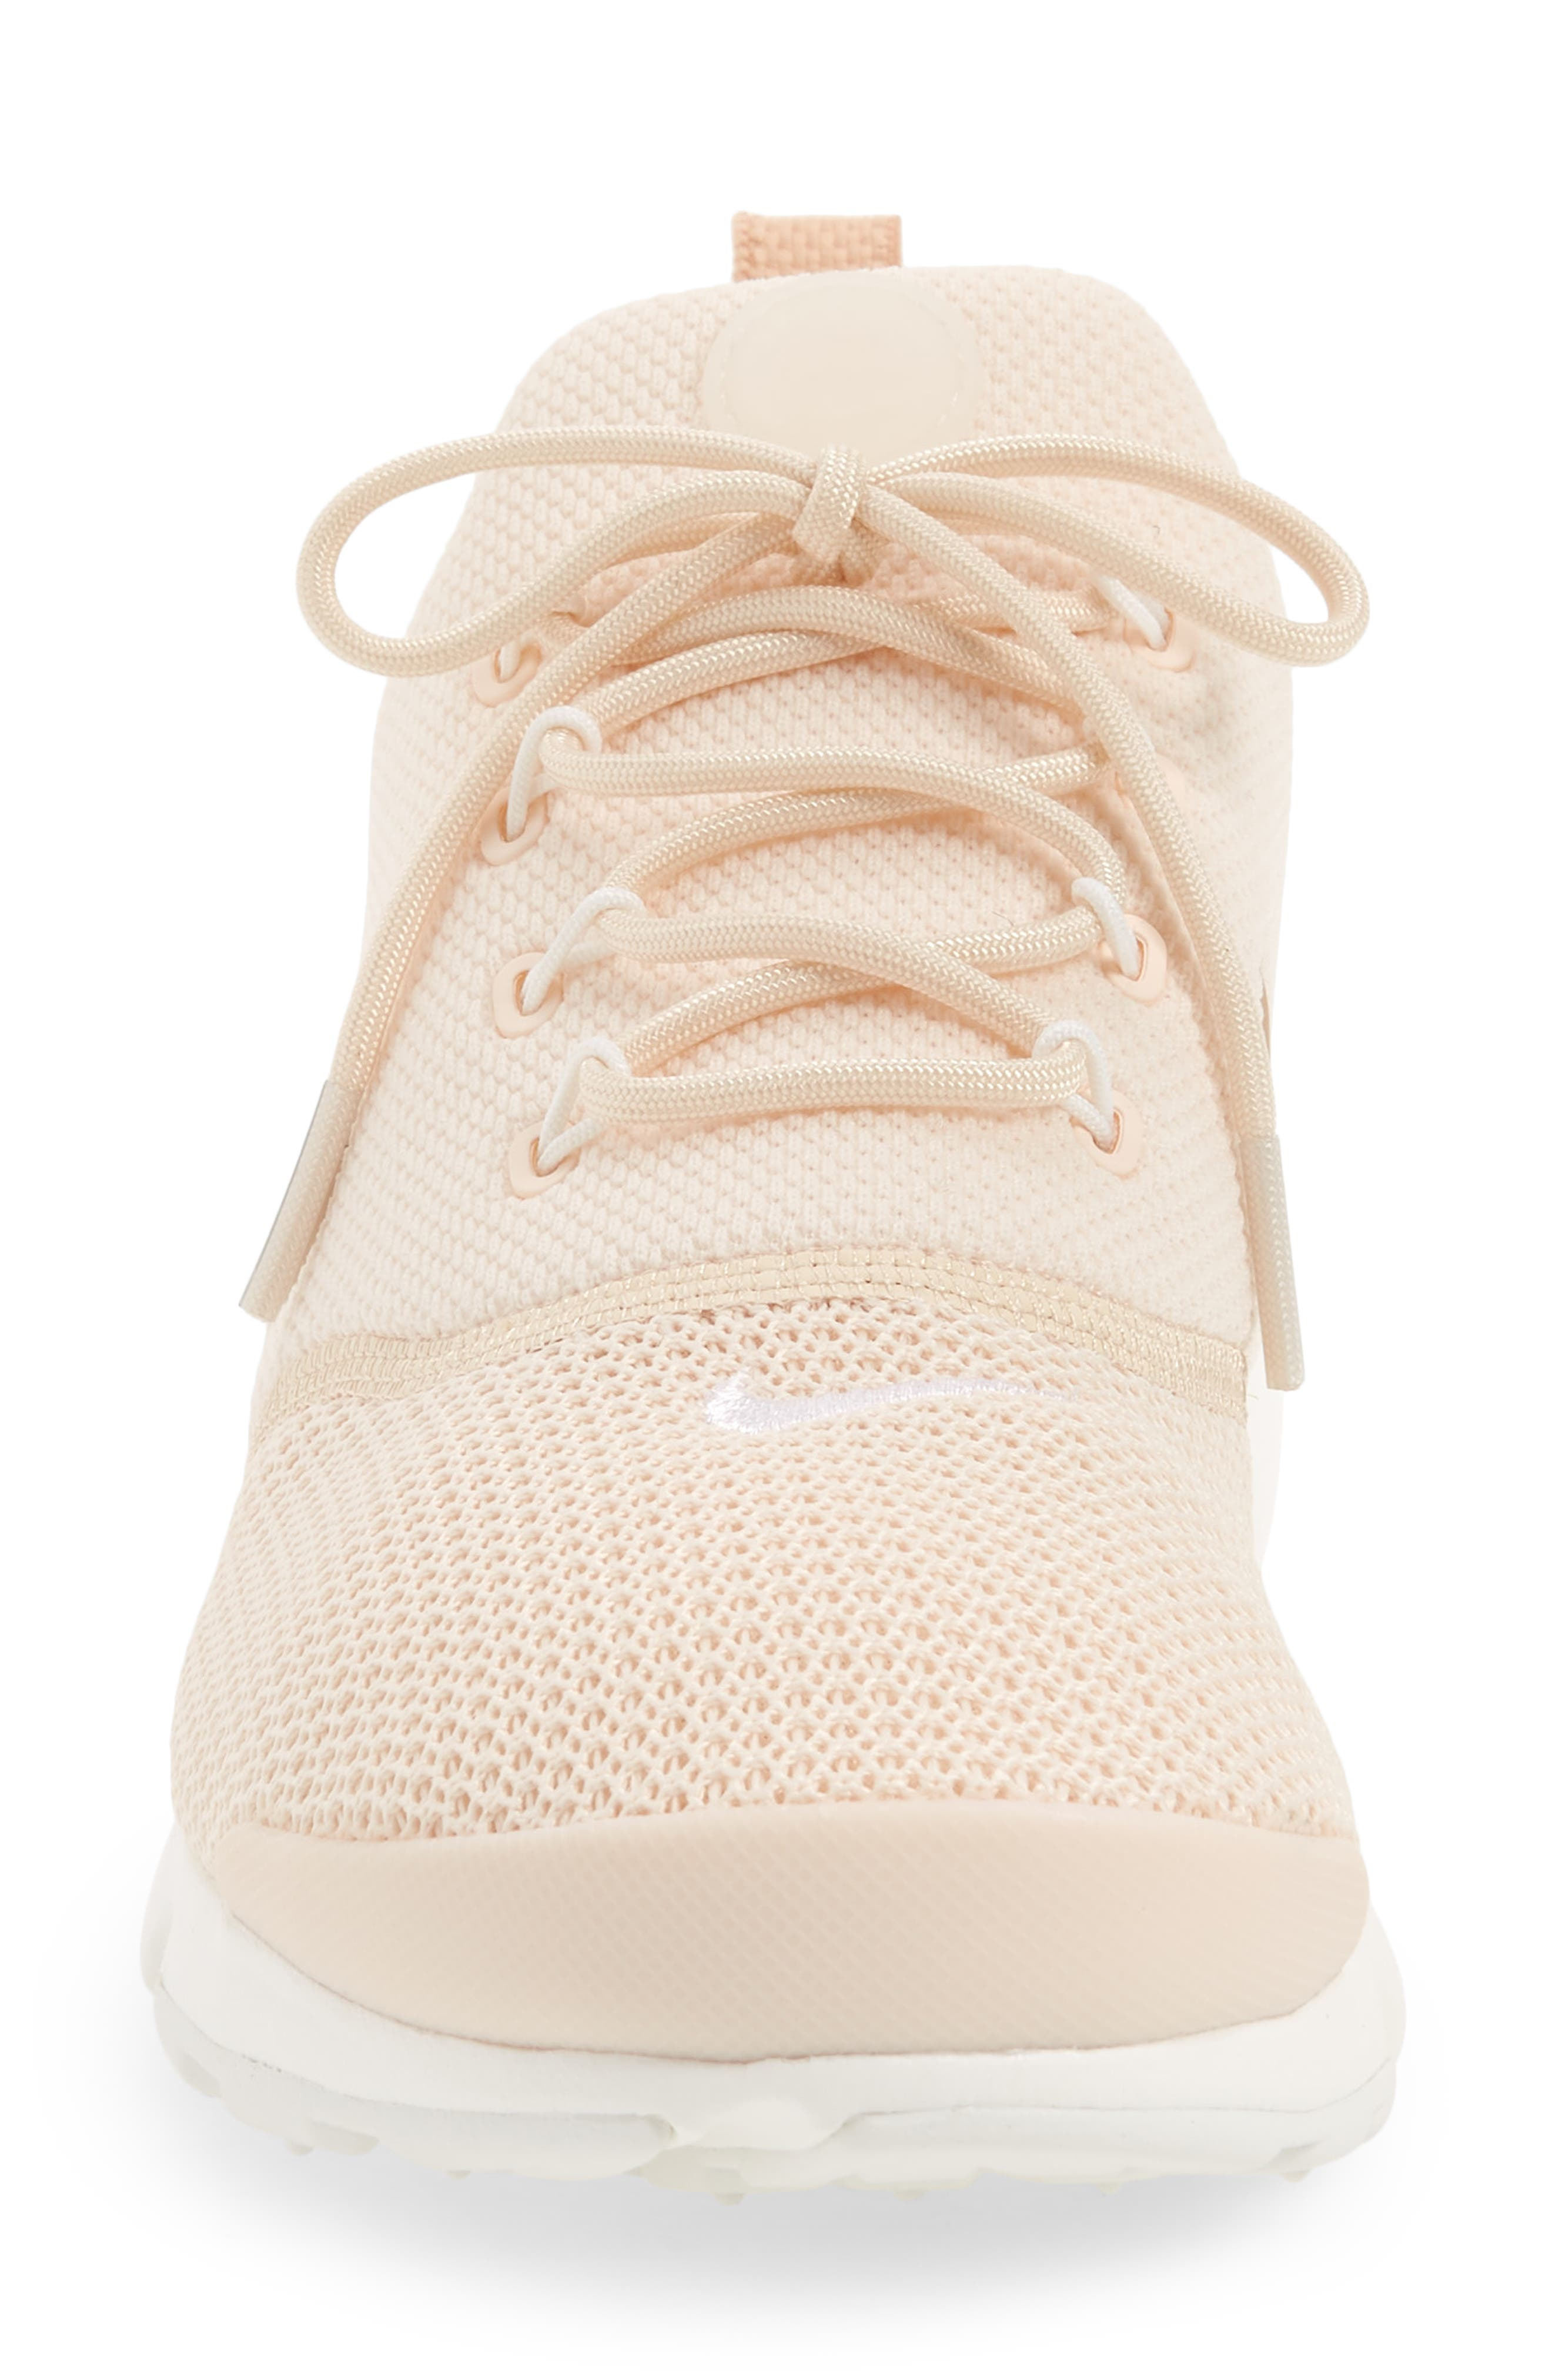 Presto Fly Sneaker,                             Alternate thumbnail 4, color,                             GUAVA ICE/ BEIGE/ SUMMIT WHITE